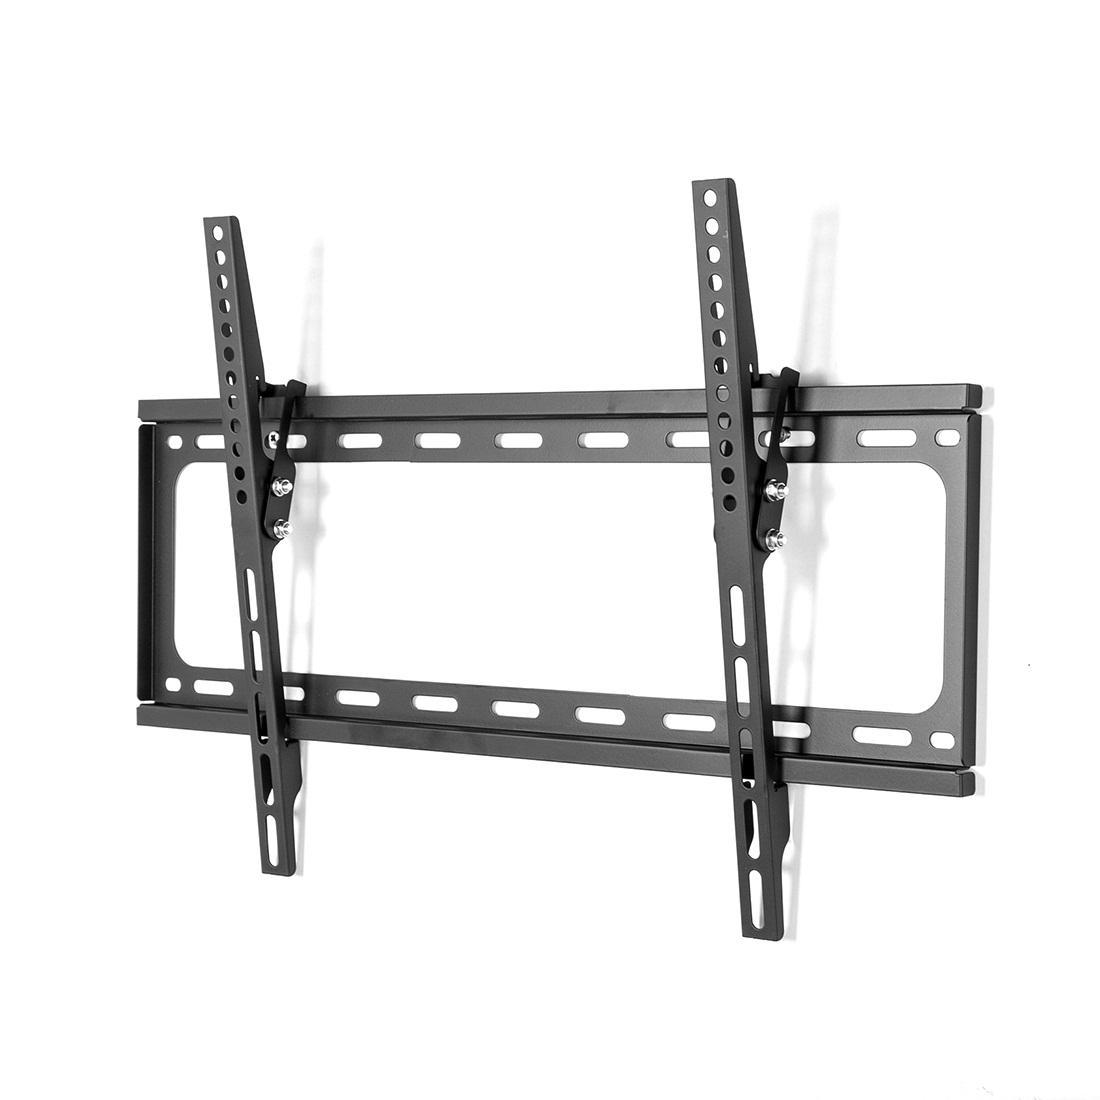 "FLEXIMOUNTS T013 Tilt Tilting TV Wall Mount Bracket fits most 32"" - 65"" 4K HD LCD LED Plasma flat panel screen"